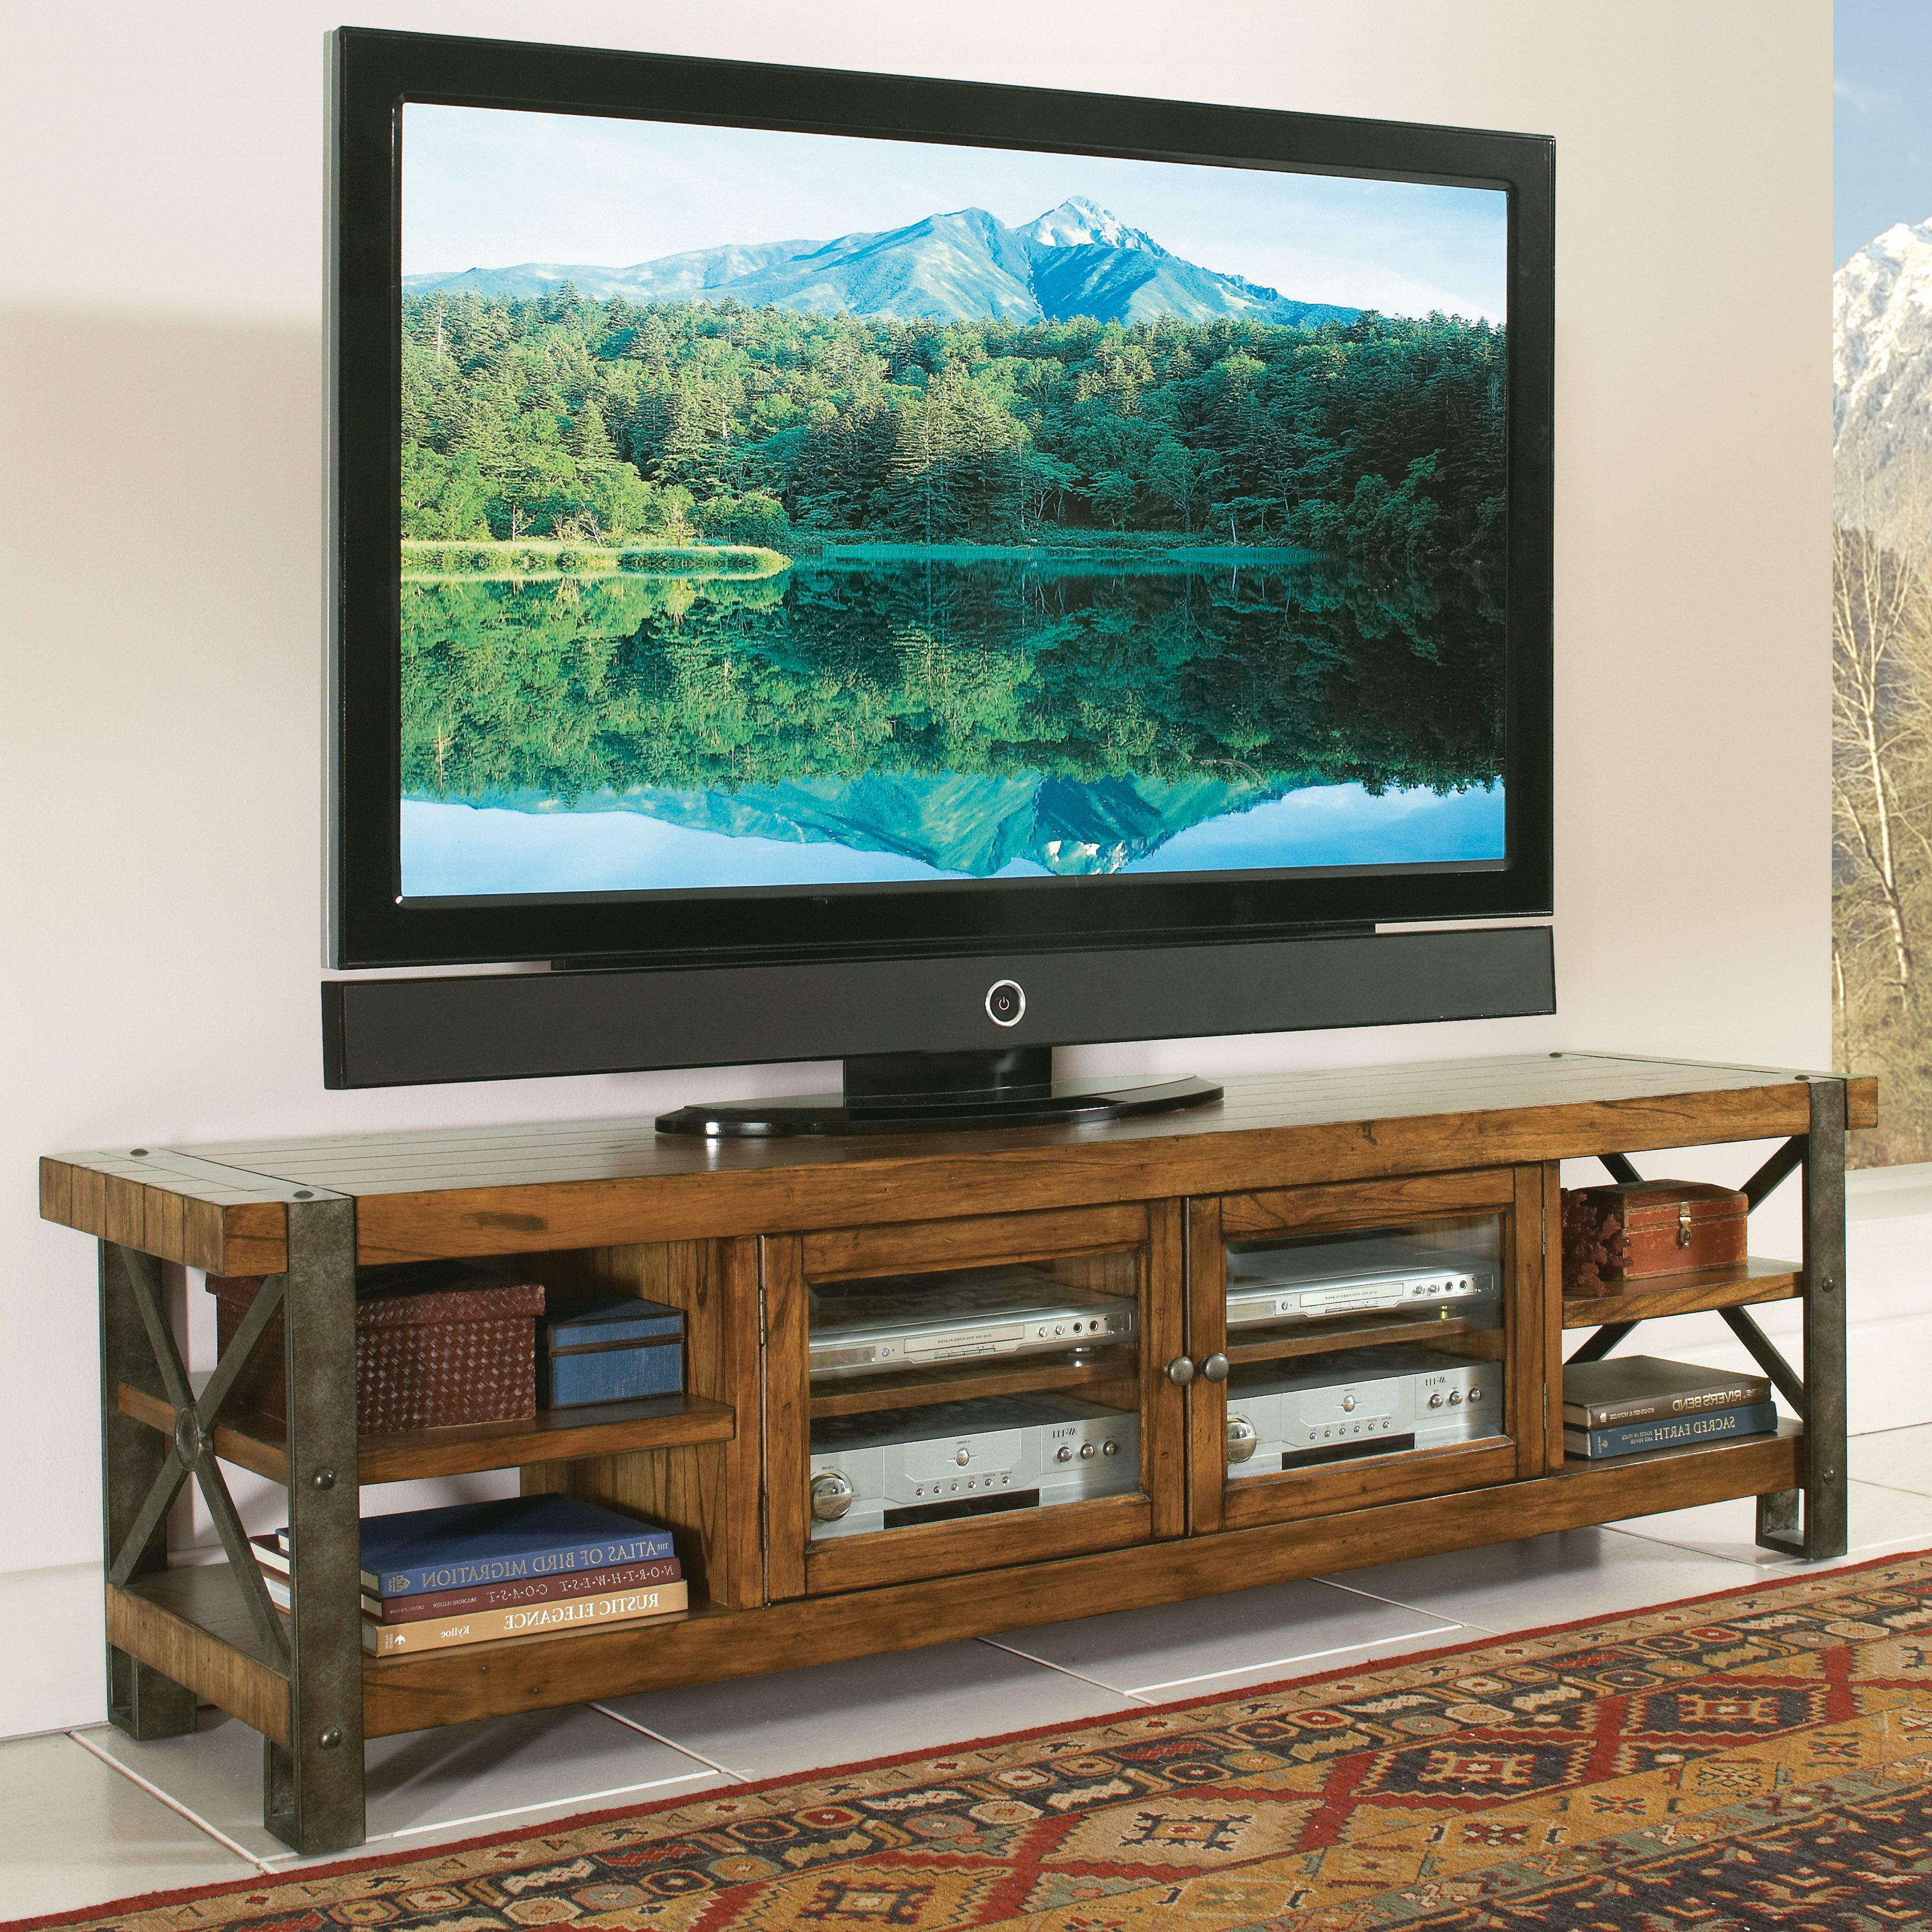 Splendid Tv Console Landmark Worn Oak Tv Stands At Hayneedle With Regard To Well Liked Large Oak Tv Stands (View 15 of 20)